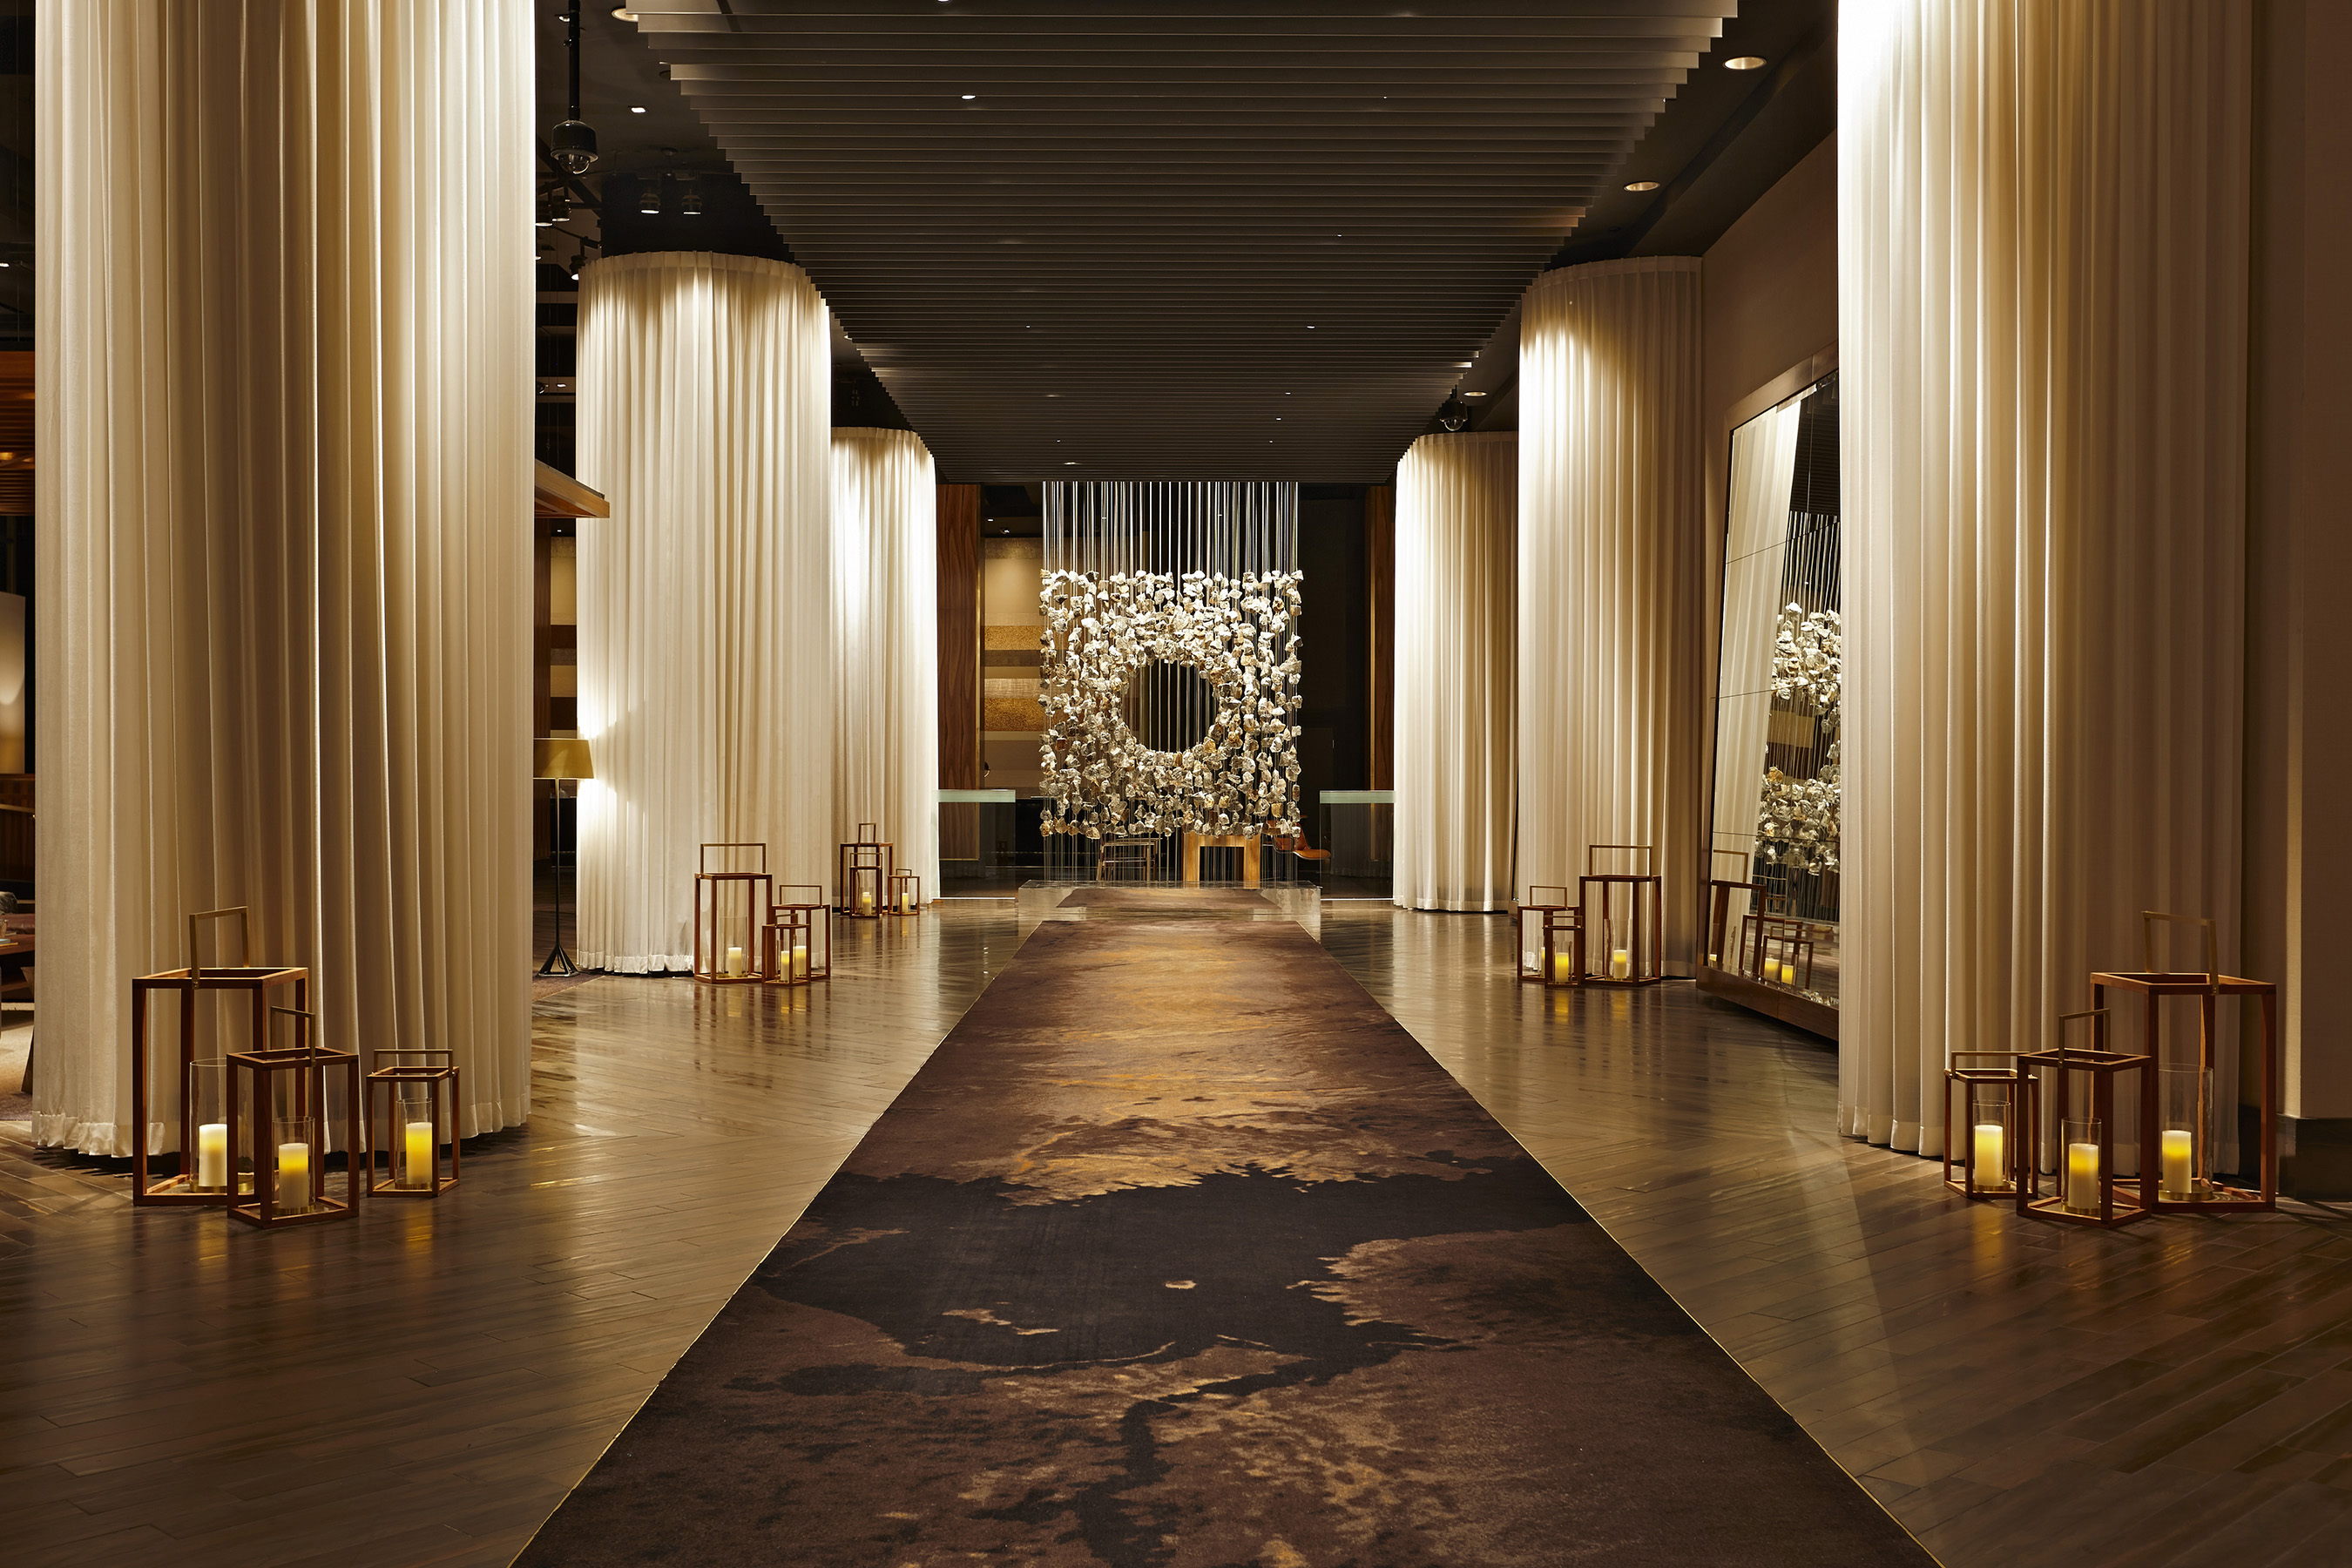 In Delano Las Vegas' lobby, striking columns wrapped in signature white sheers frame a suspended art installation comprised of hundreds of small rocks by renowned Korean artist Jaehyo Lee.